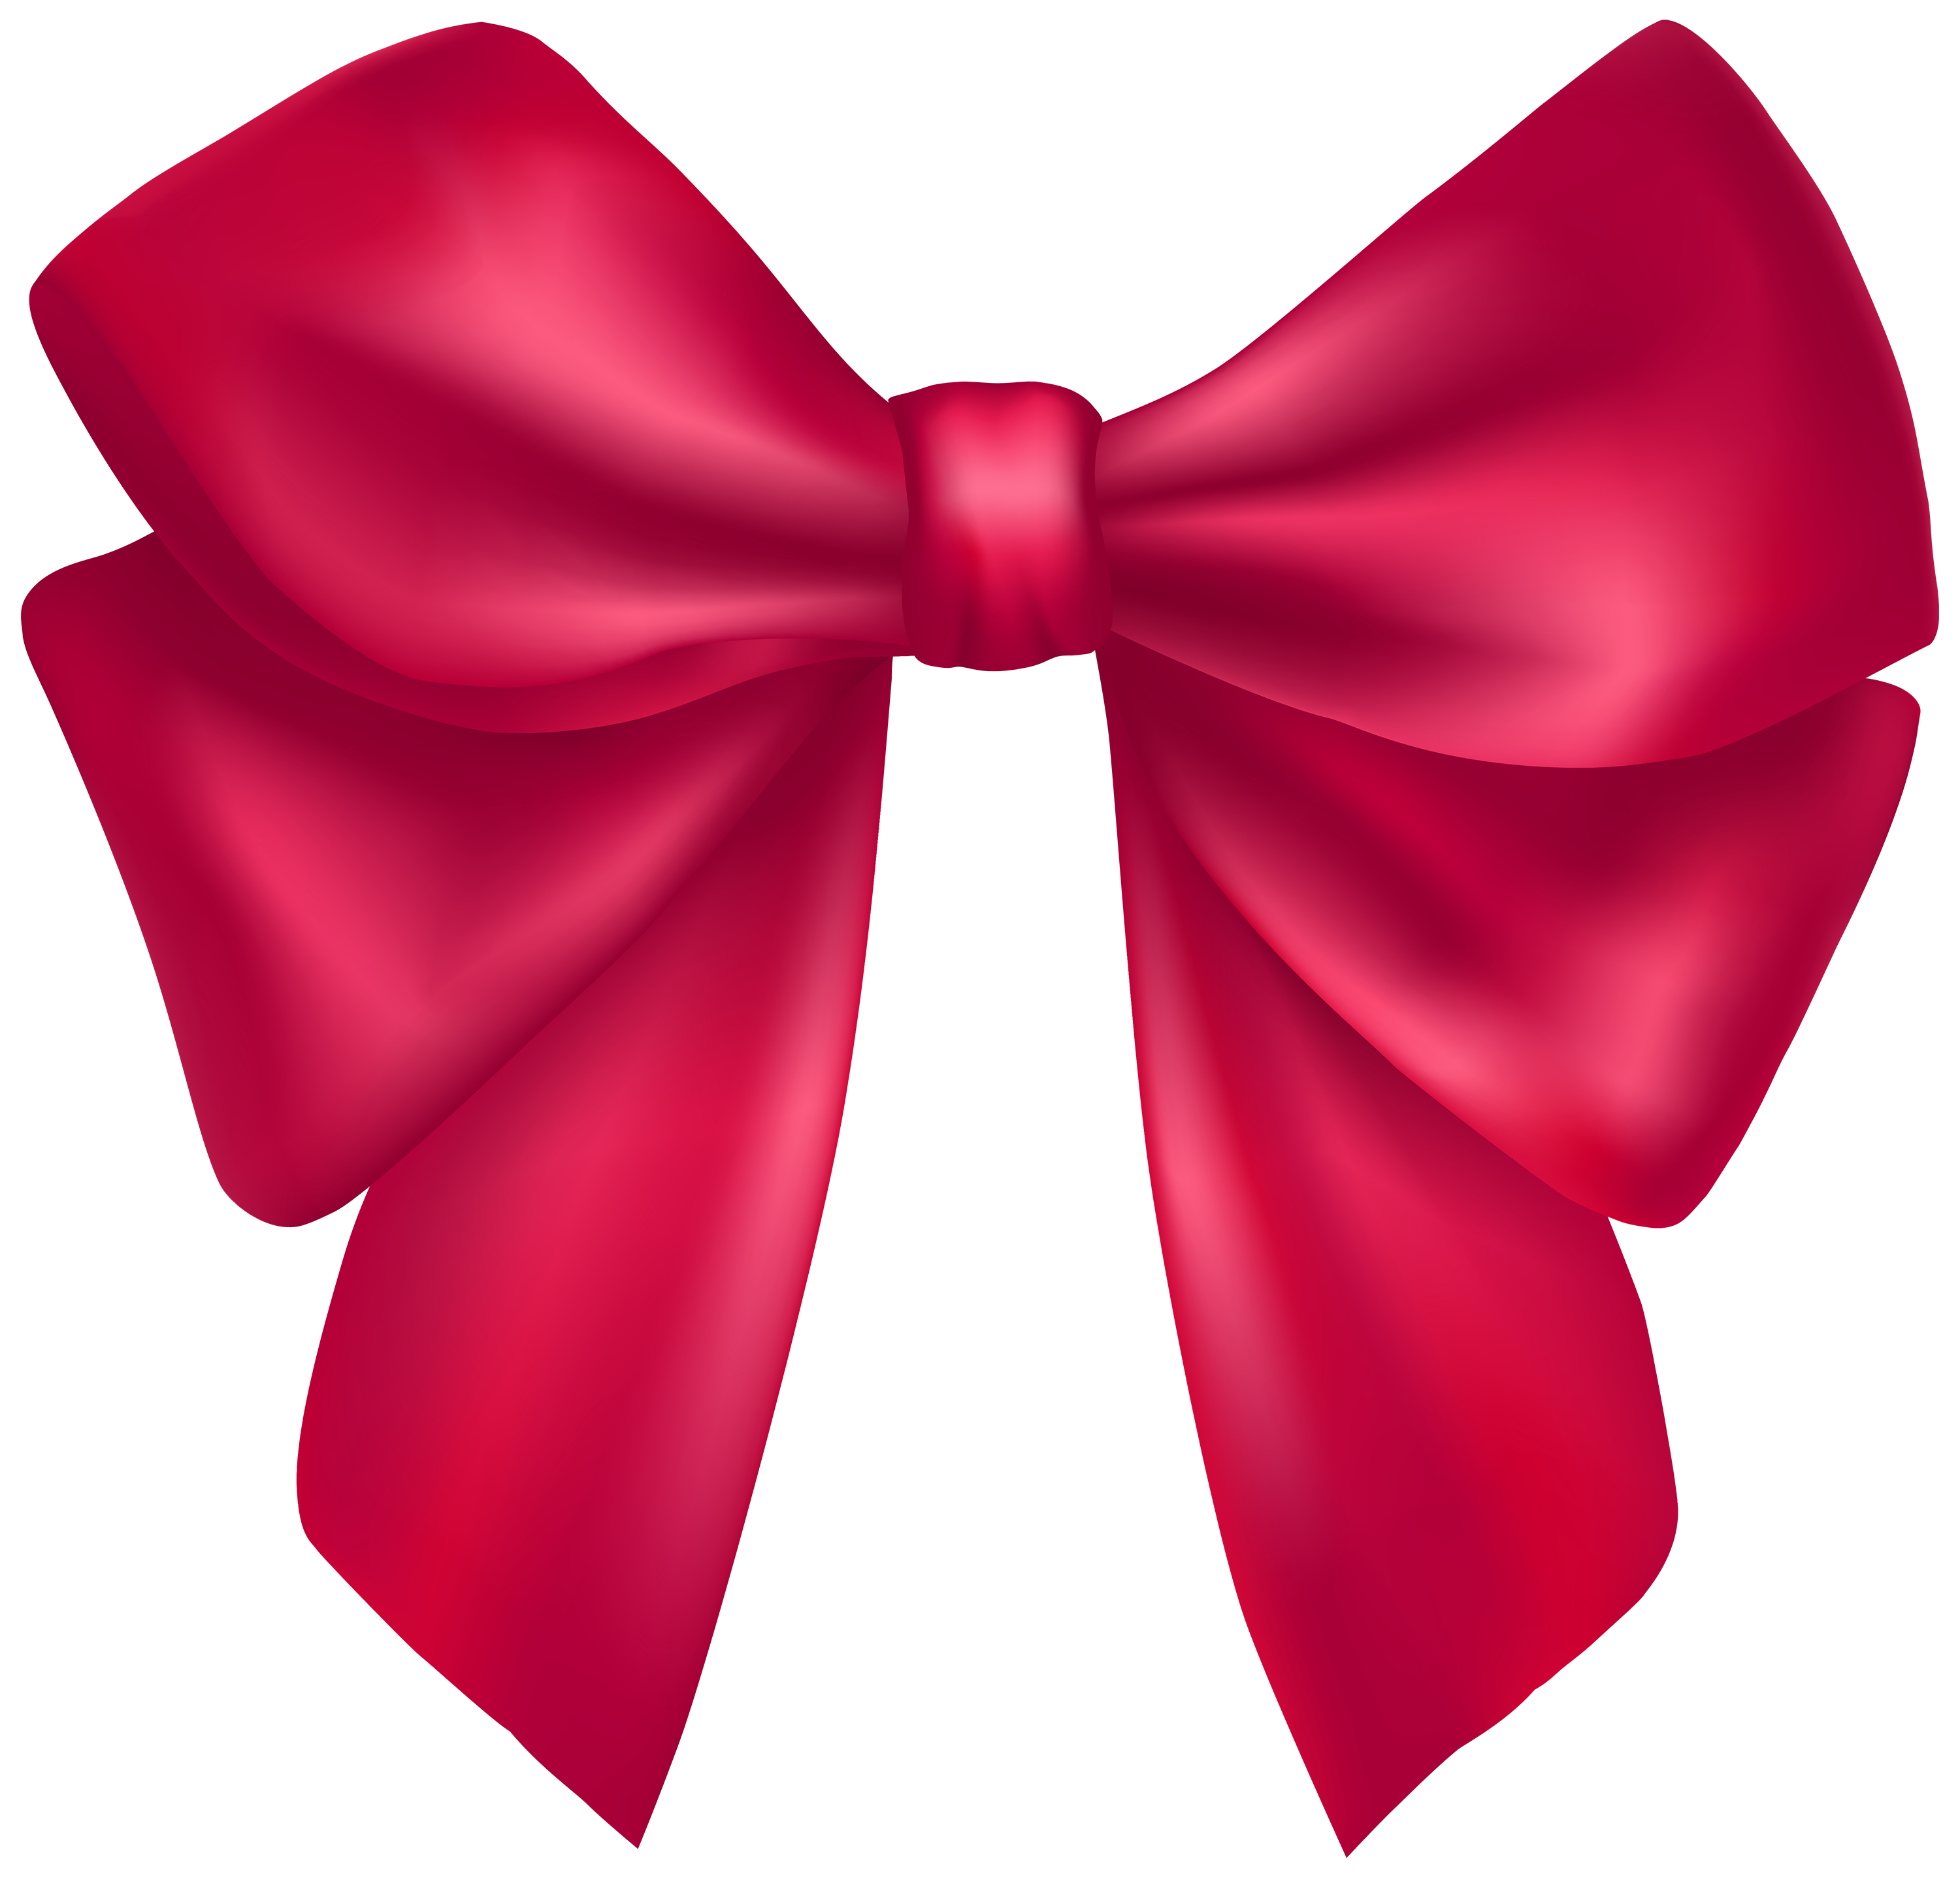 3000x2874 Bow Tie Clipart Hot Pink